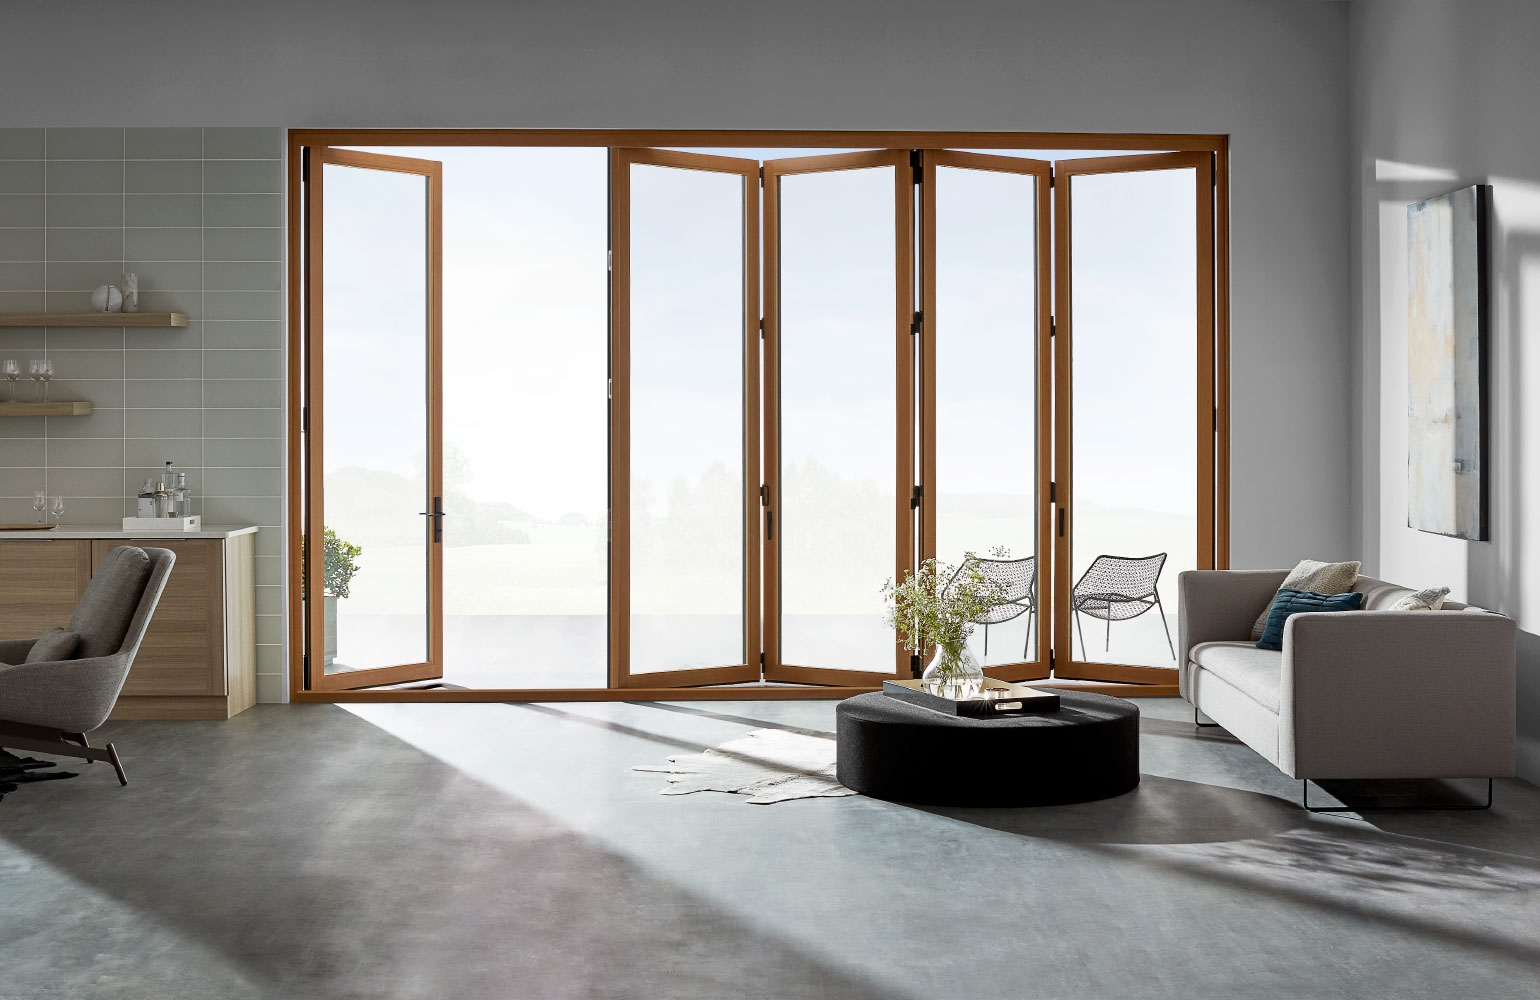 living room with light wood stained bifold patio doors partly open